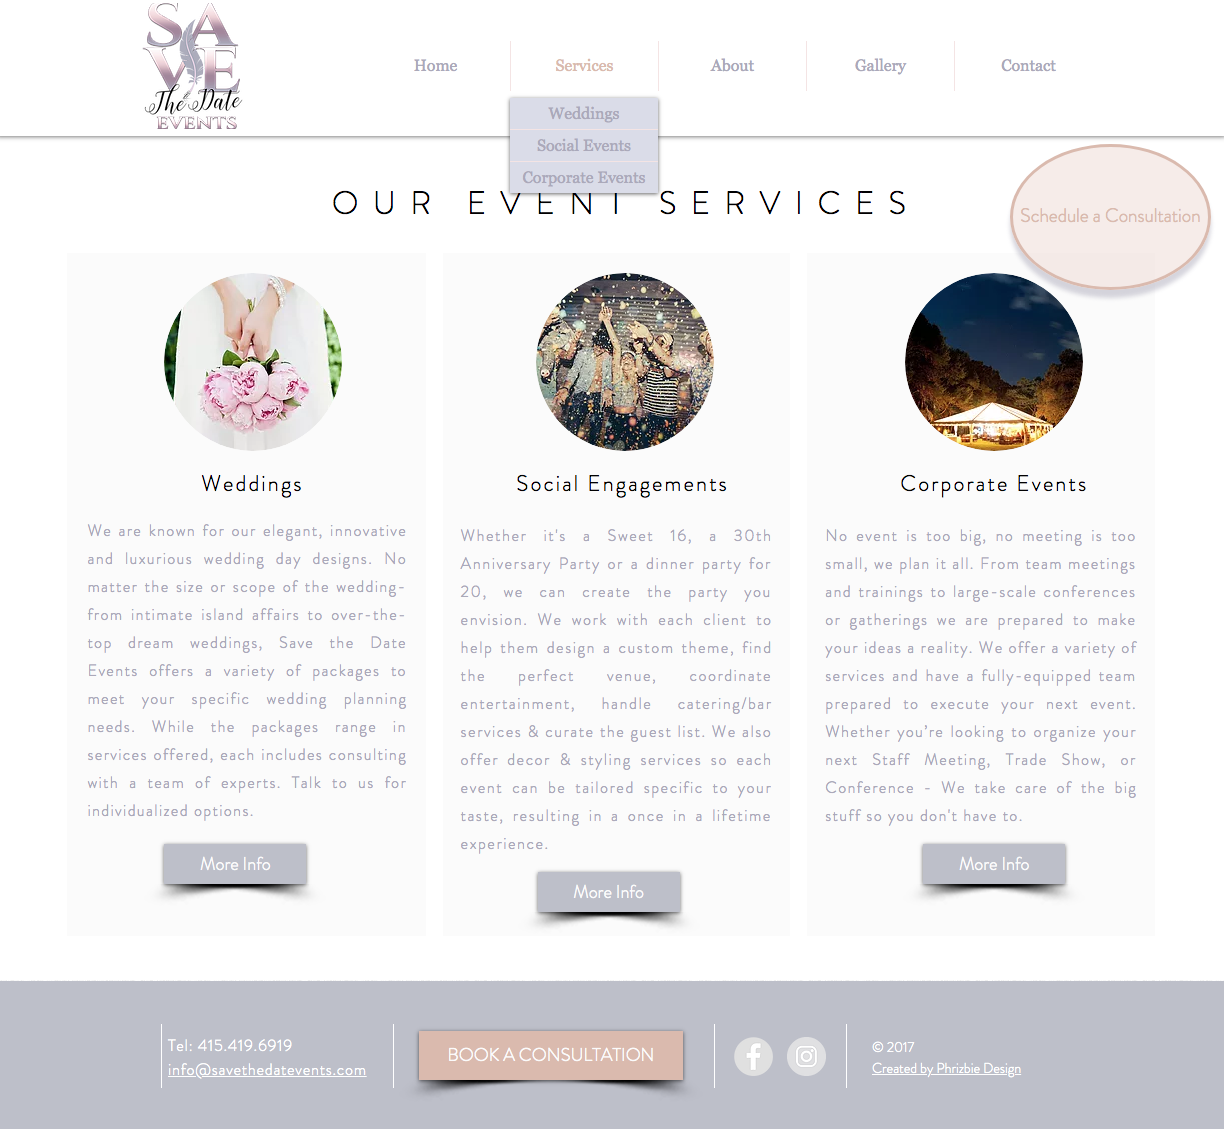 Save The Date Events Website Design